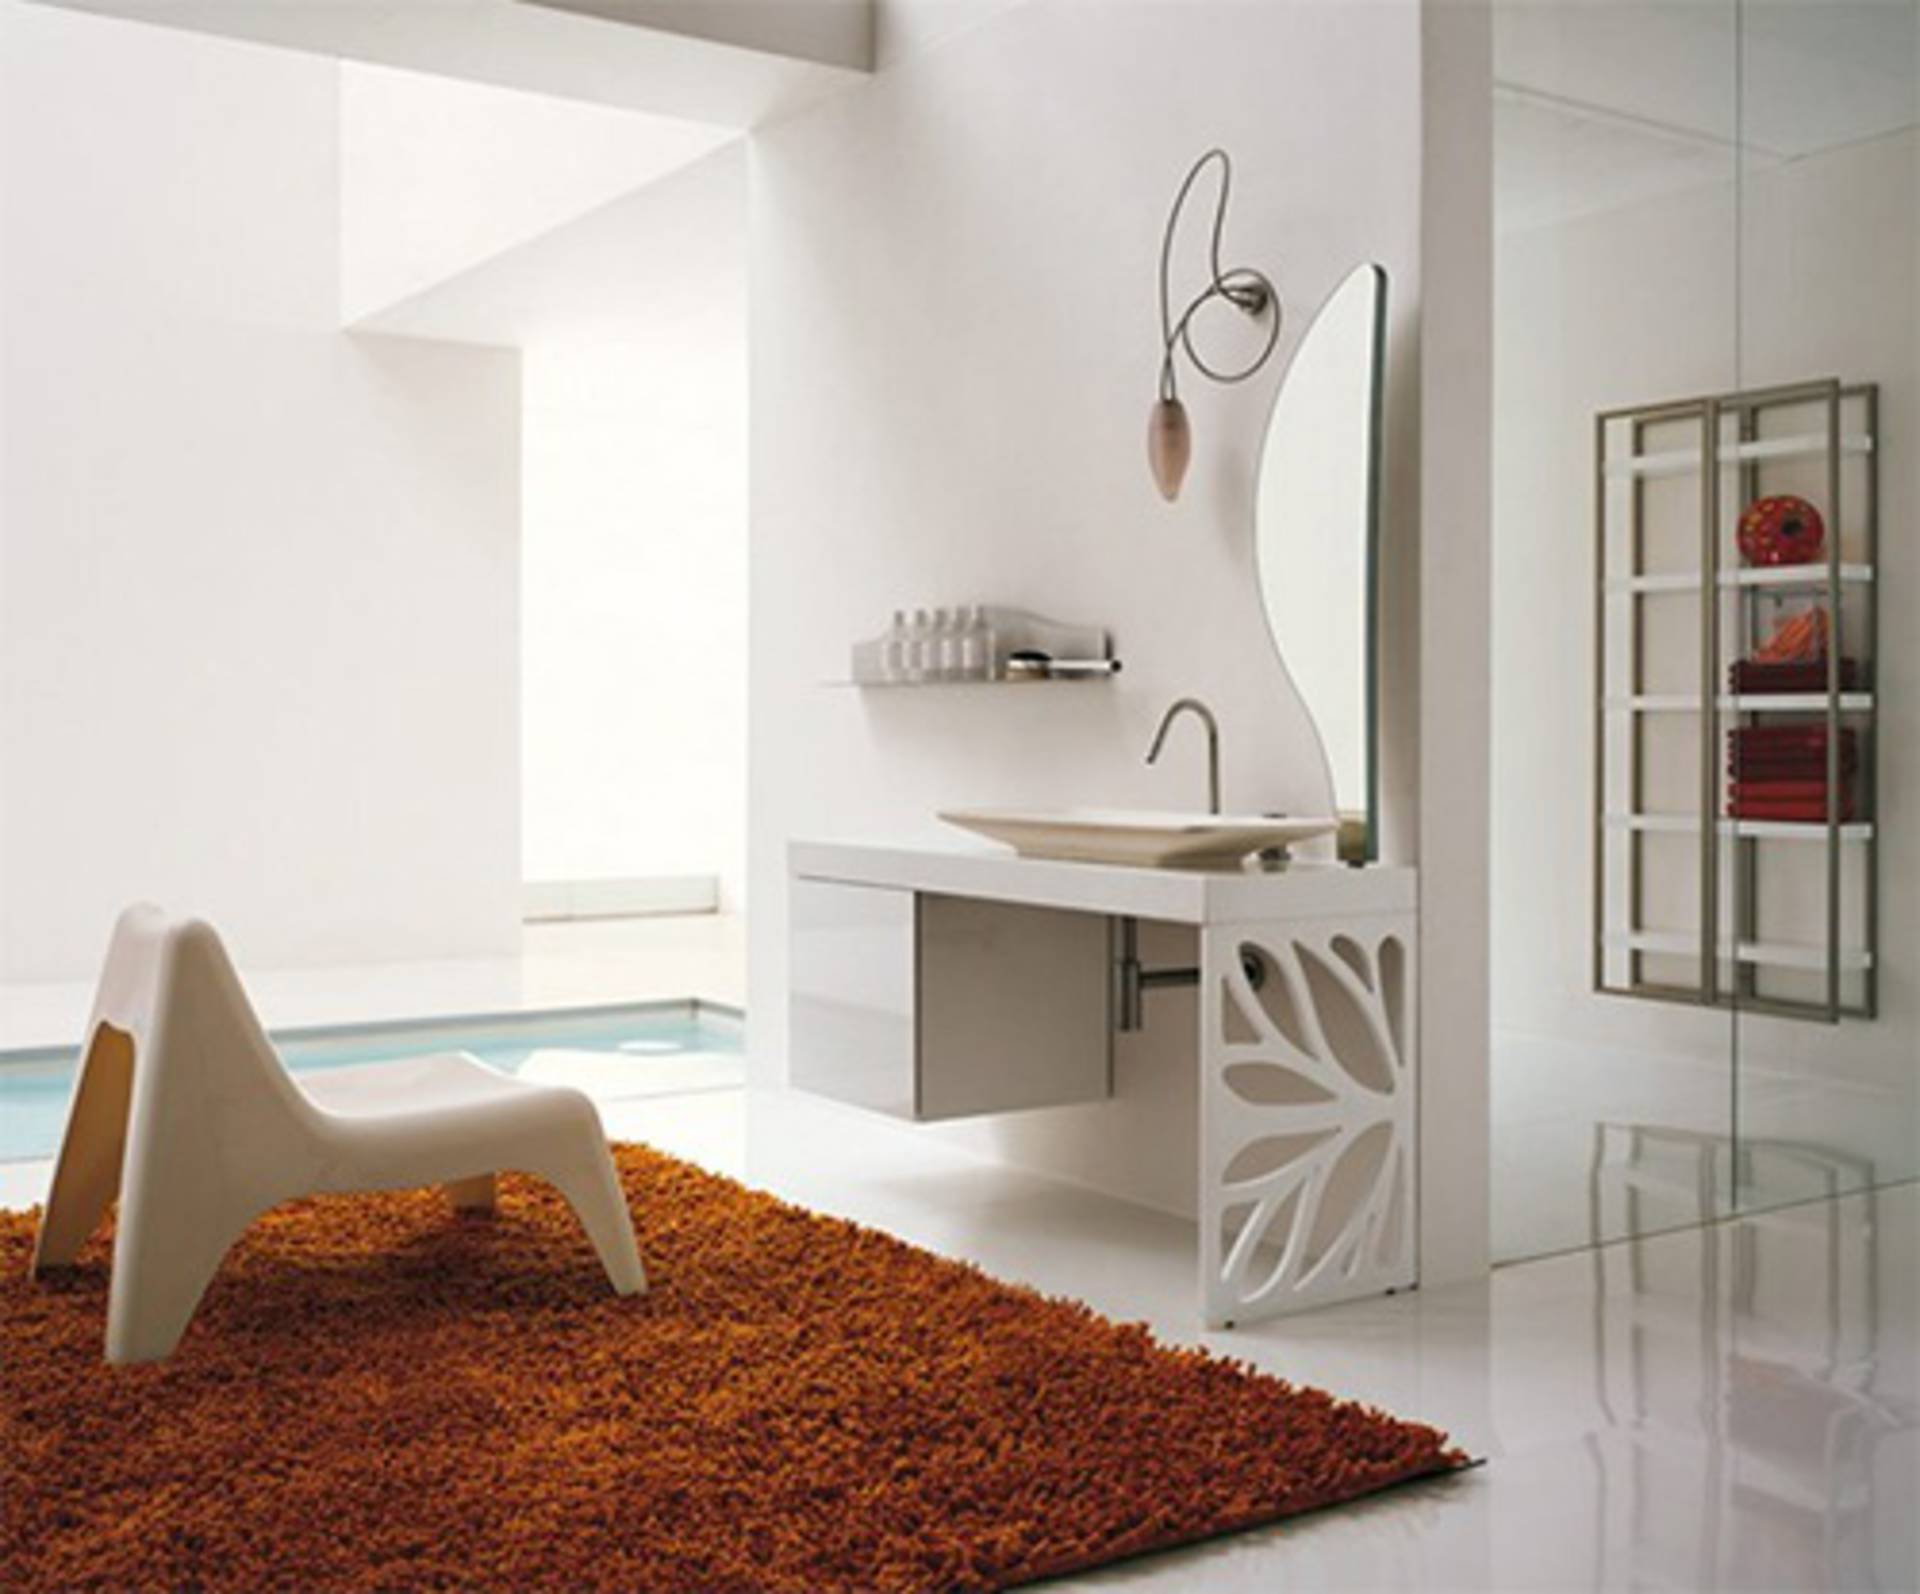 Eden Bathroom Designs By Cerasa Eden Bathroom Designs By Cerasa ... Ideas